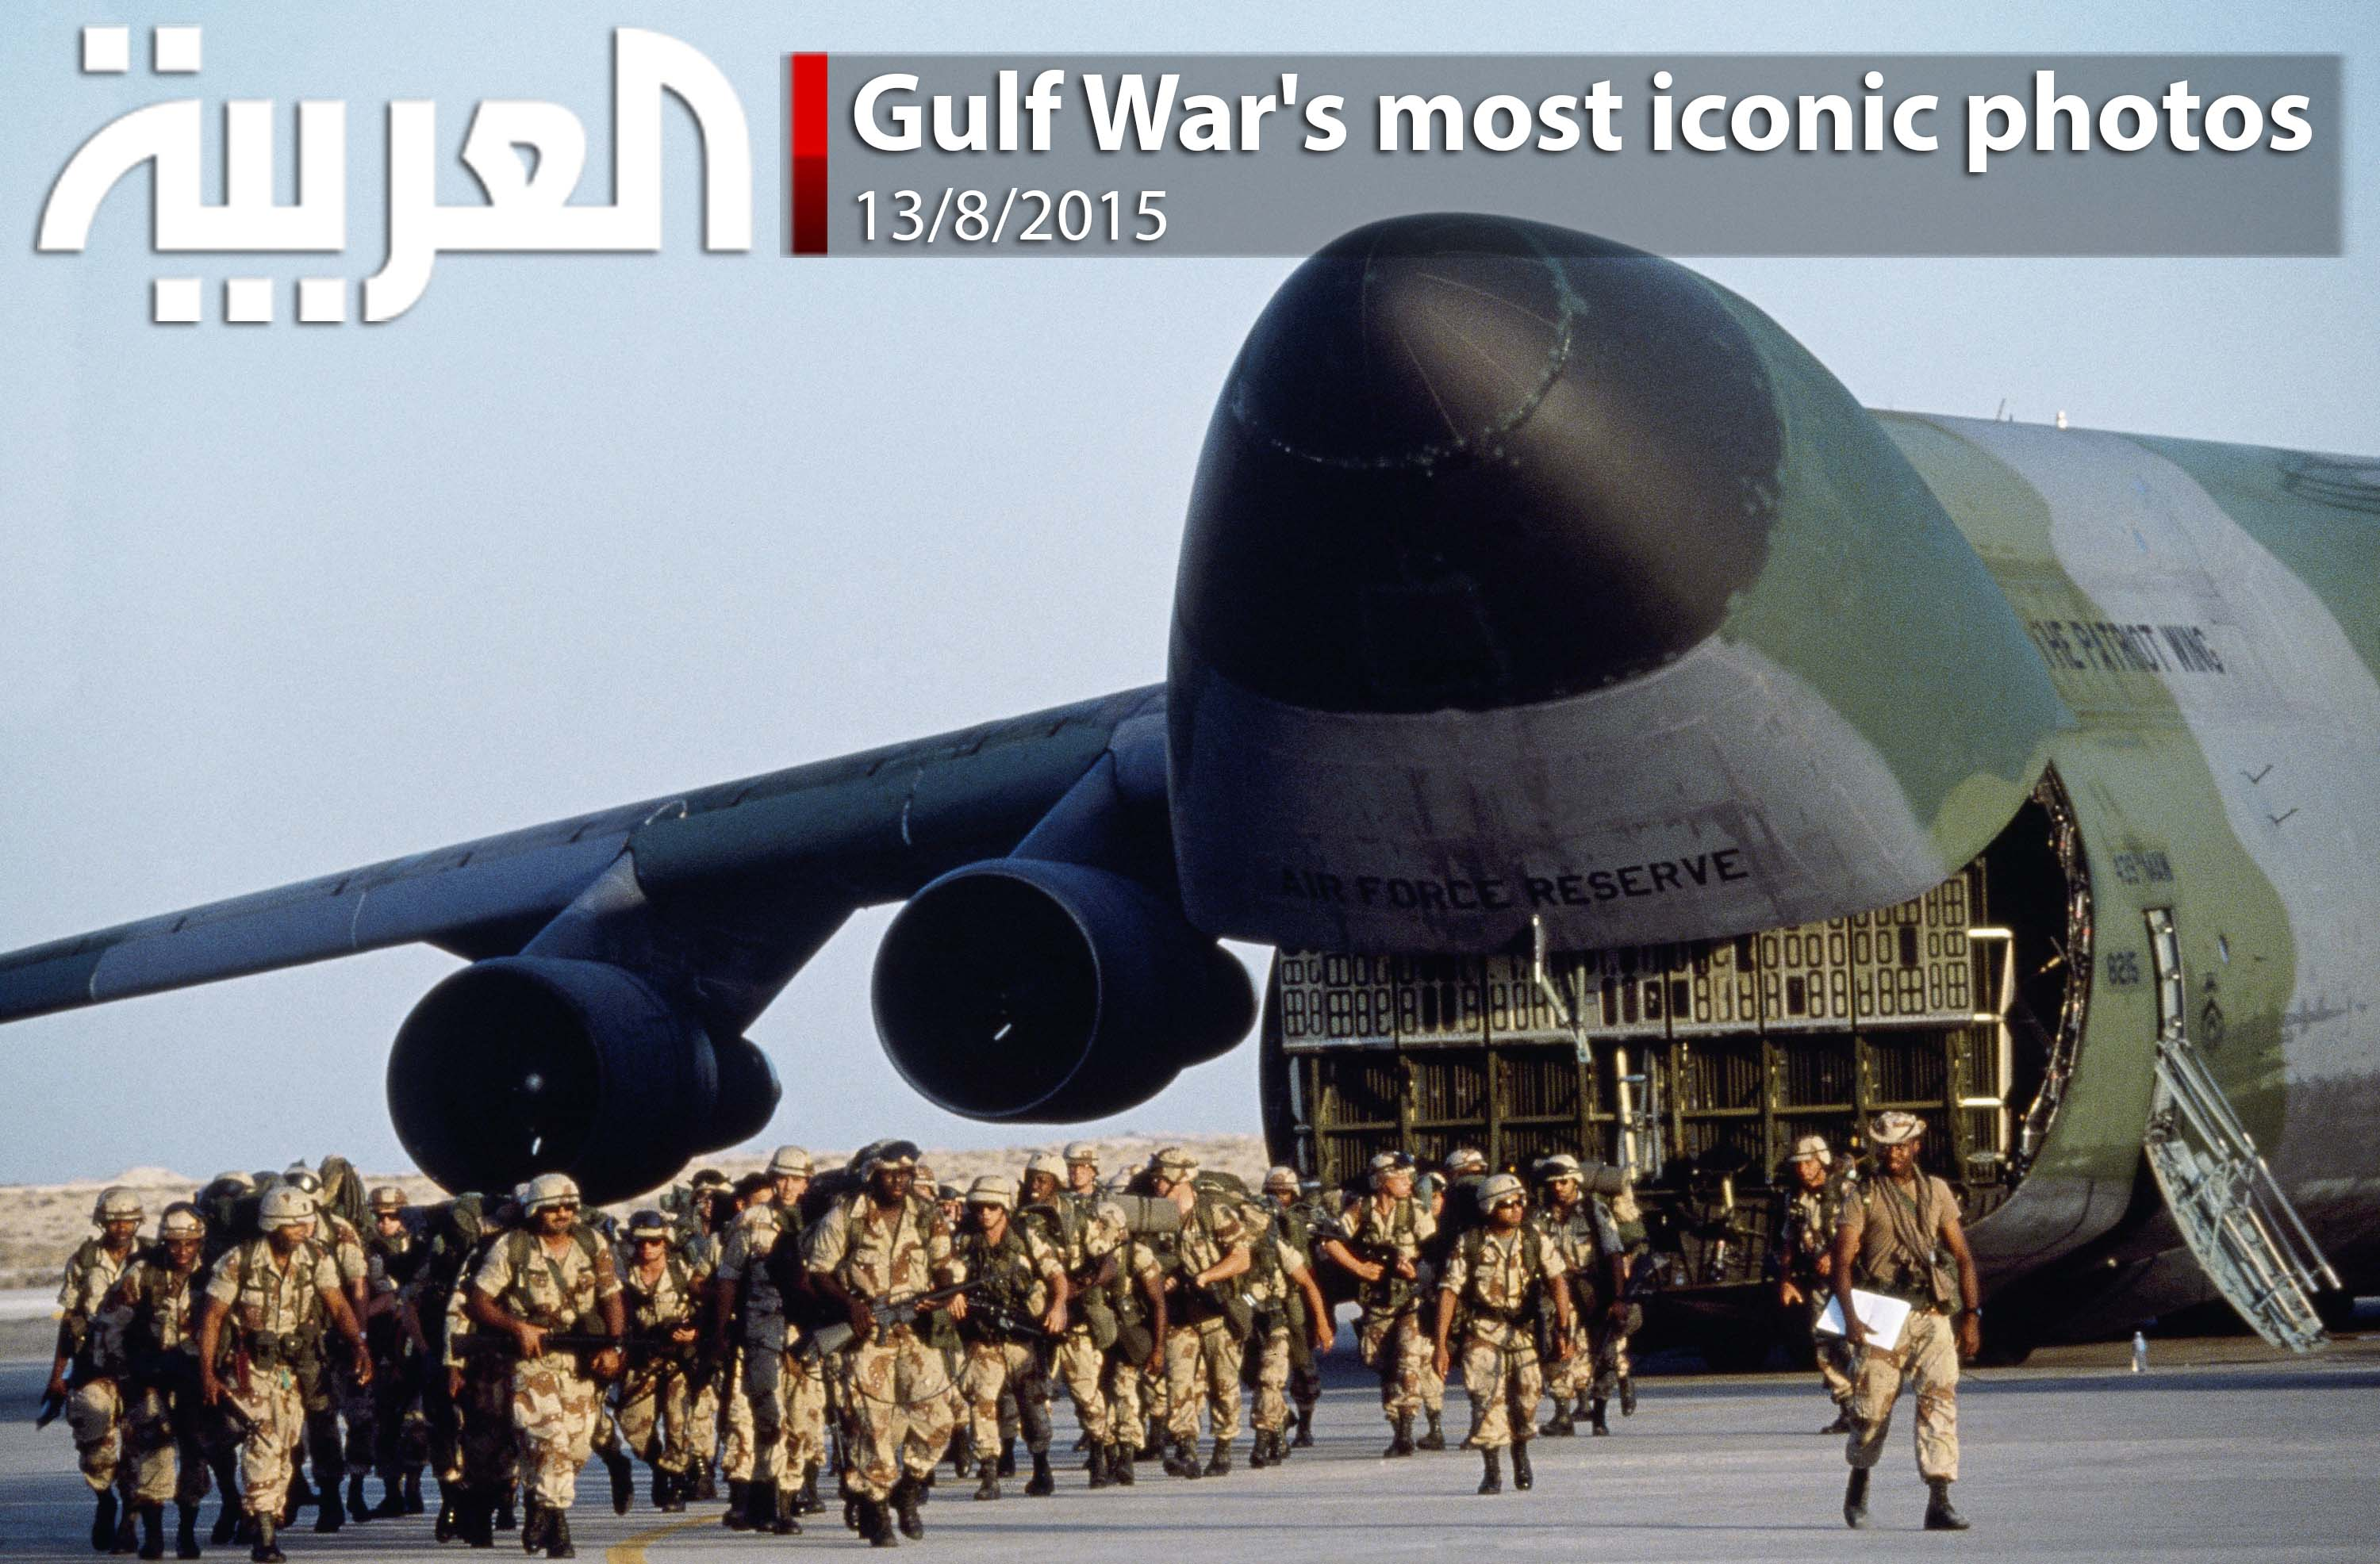 Most Iconic Gulf War images